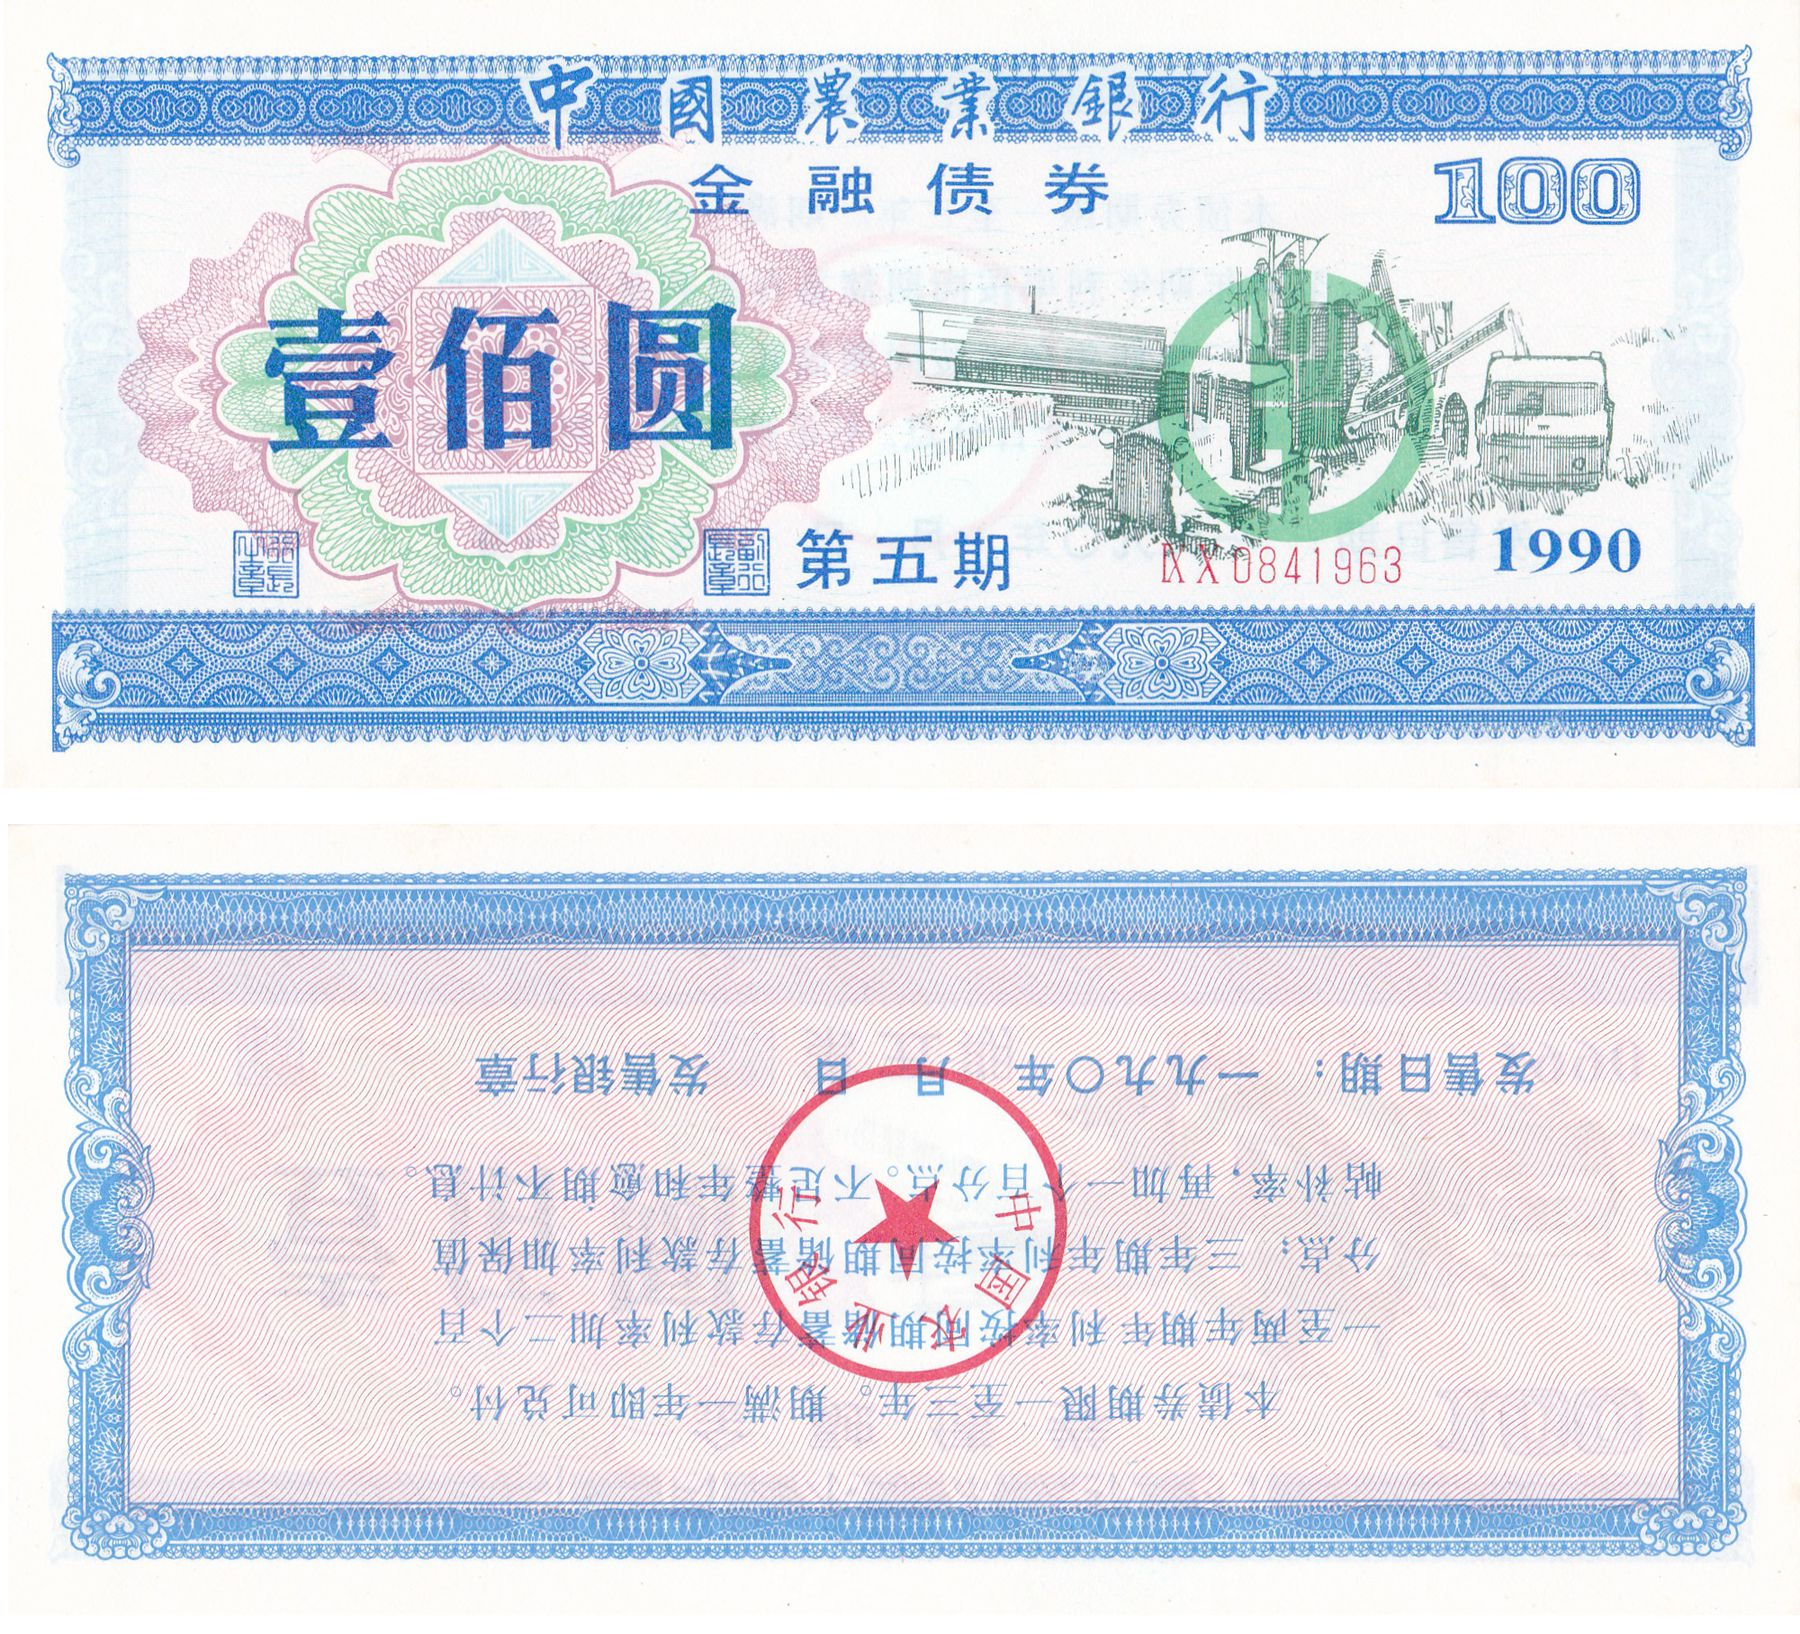 B7326, China Farmer's Bank, 7% Finance Bond 100 Yuan, 1990